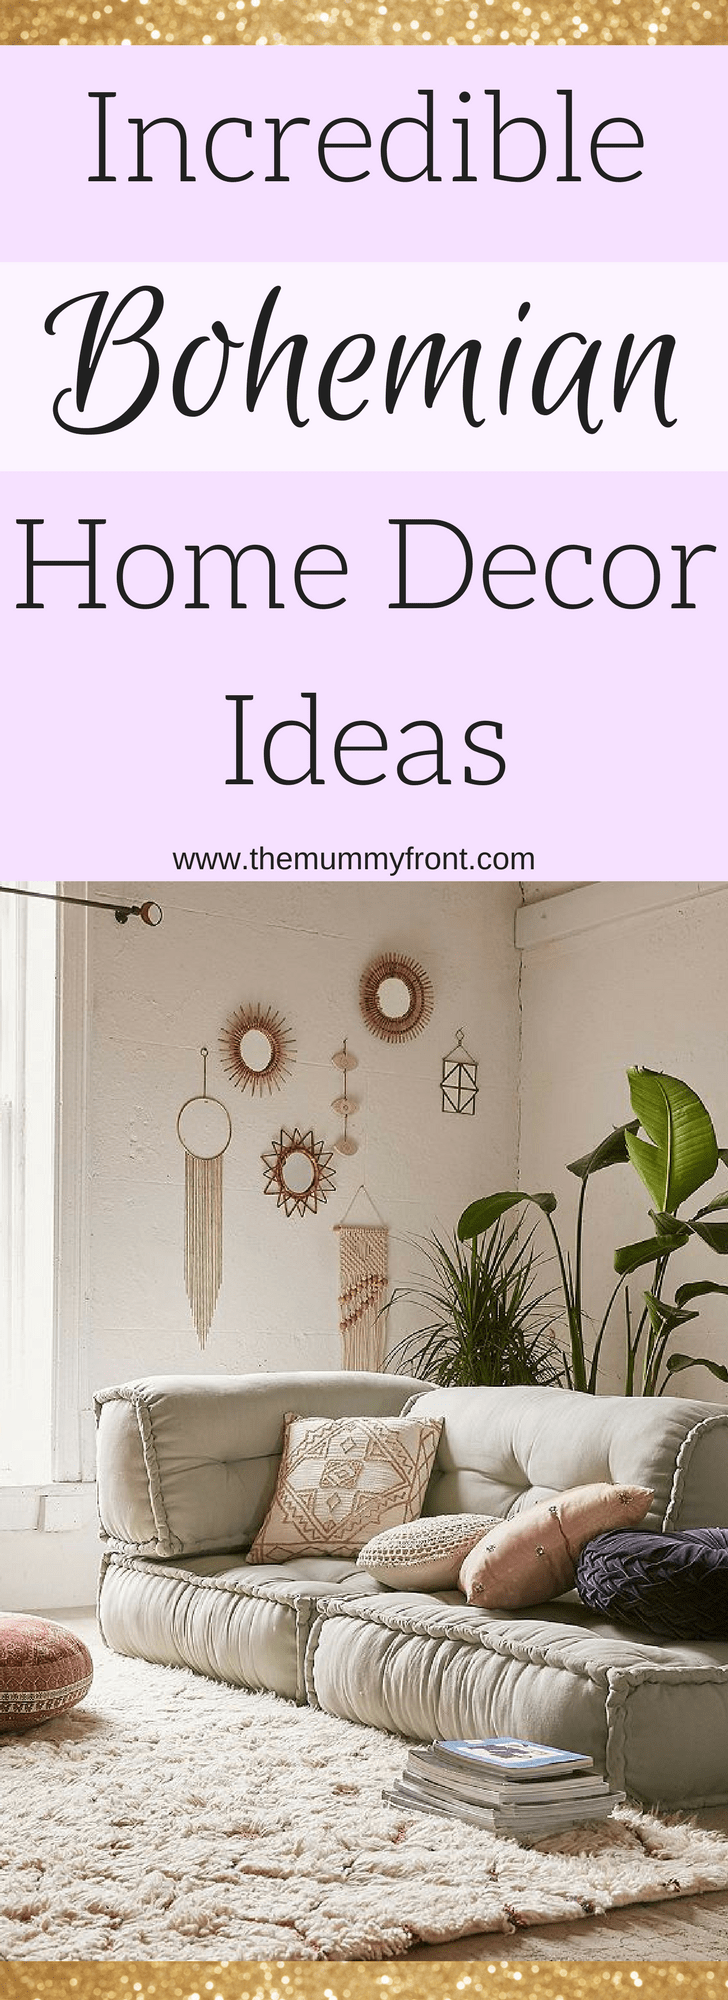 How To Get Bohemian Style Decor In Your Home... Without Redecorating | The Mummy Front